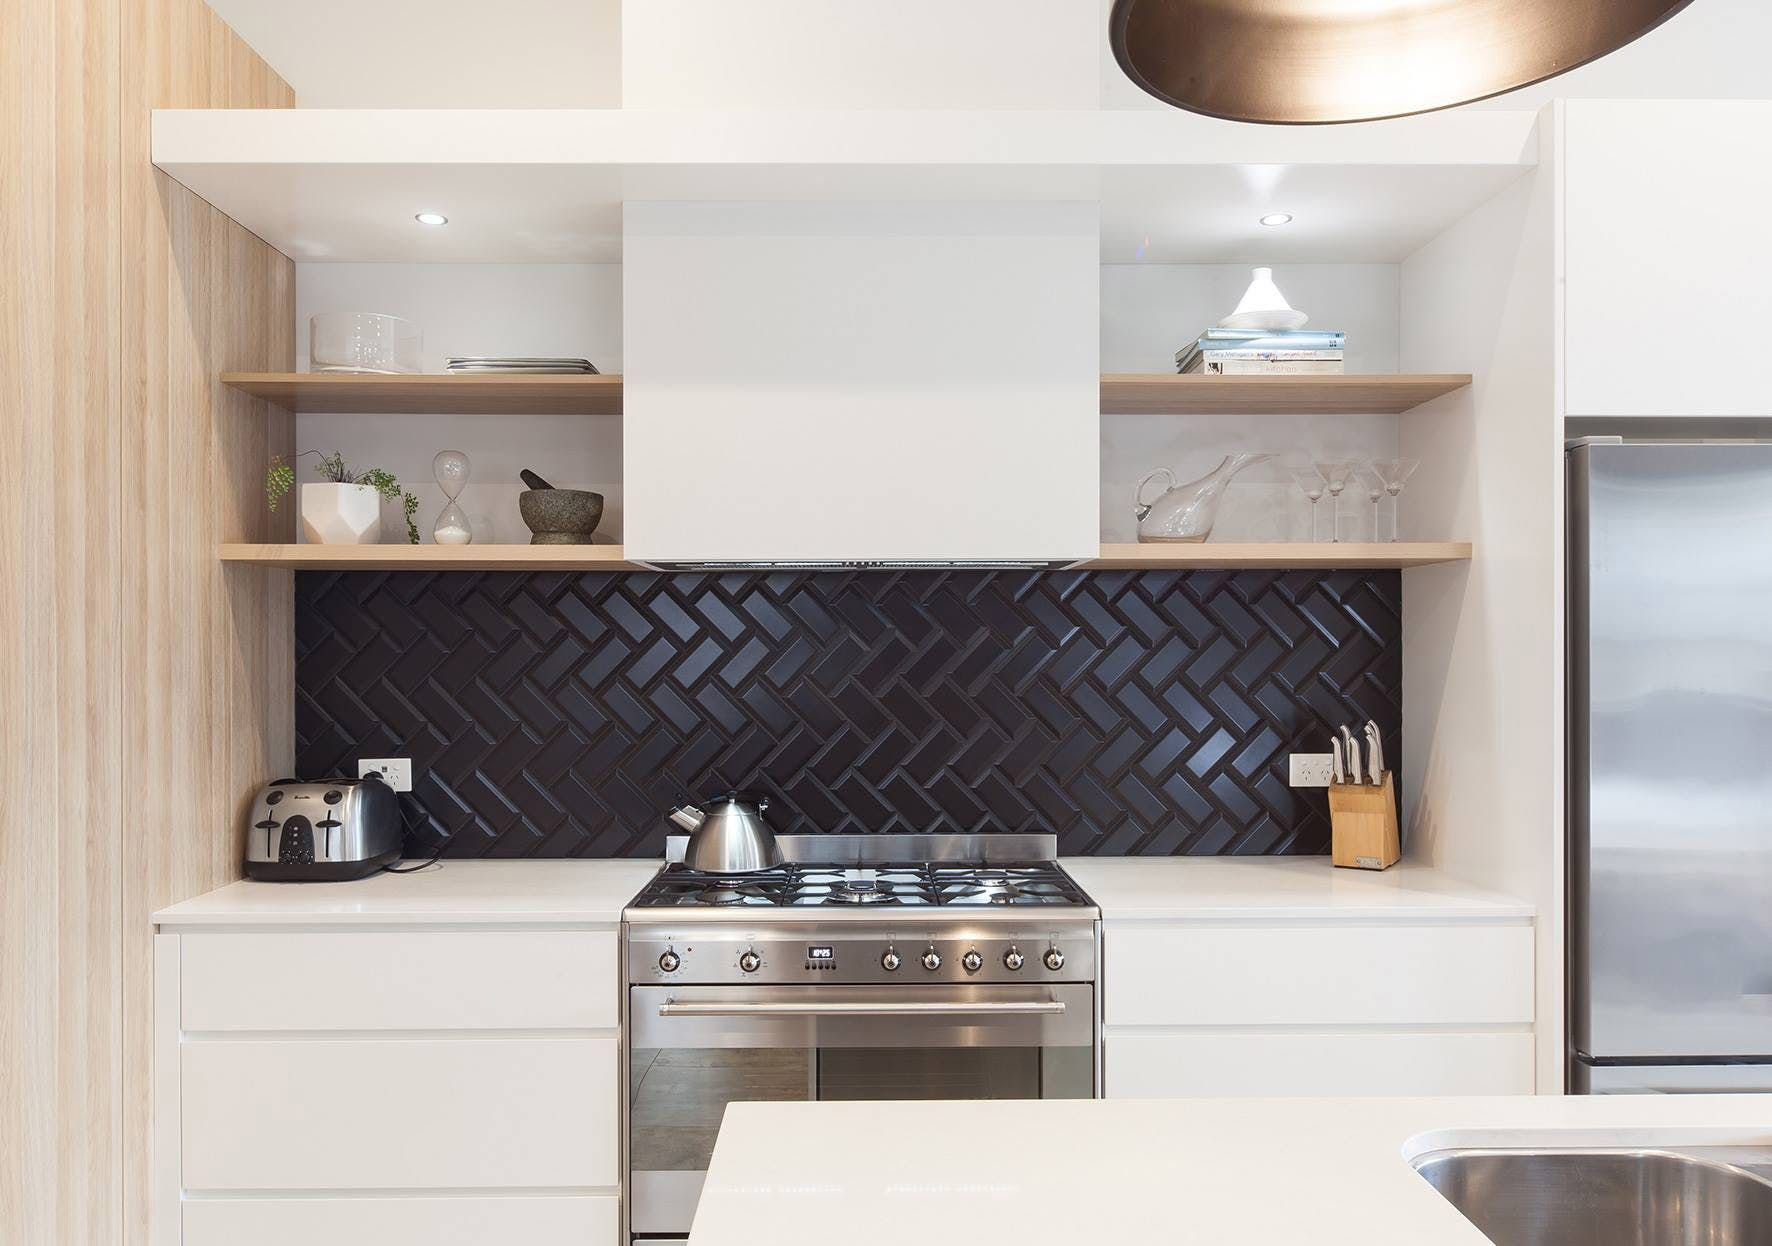 Black And White Tile Kitchen Backsplash Modern Cabinet Handles The Sophisticated New Trend We Can 39t Get Enough Of